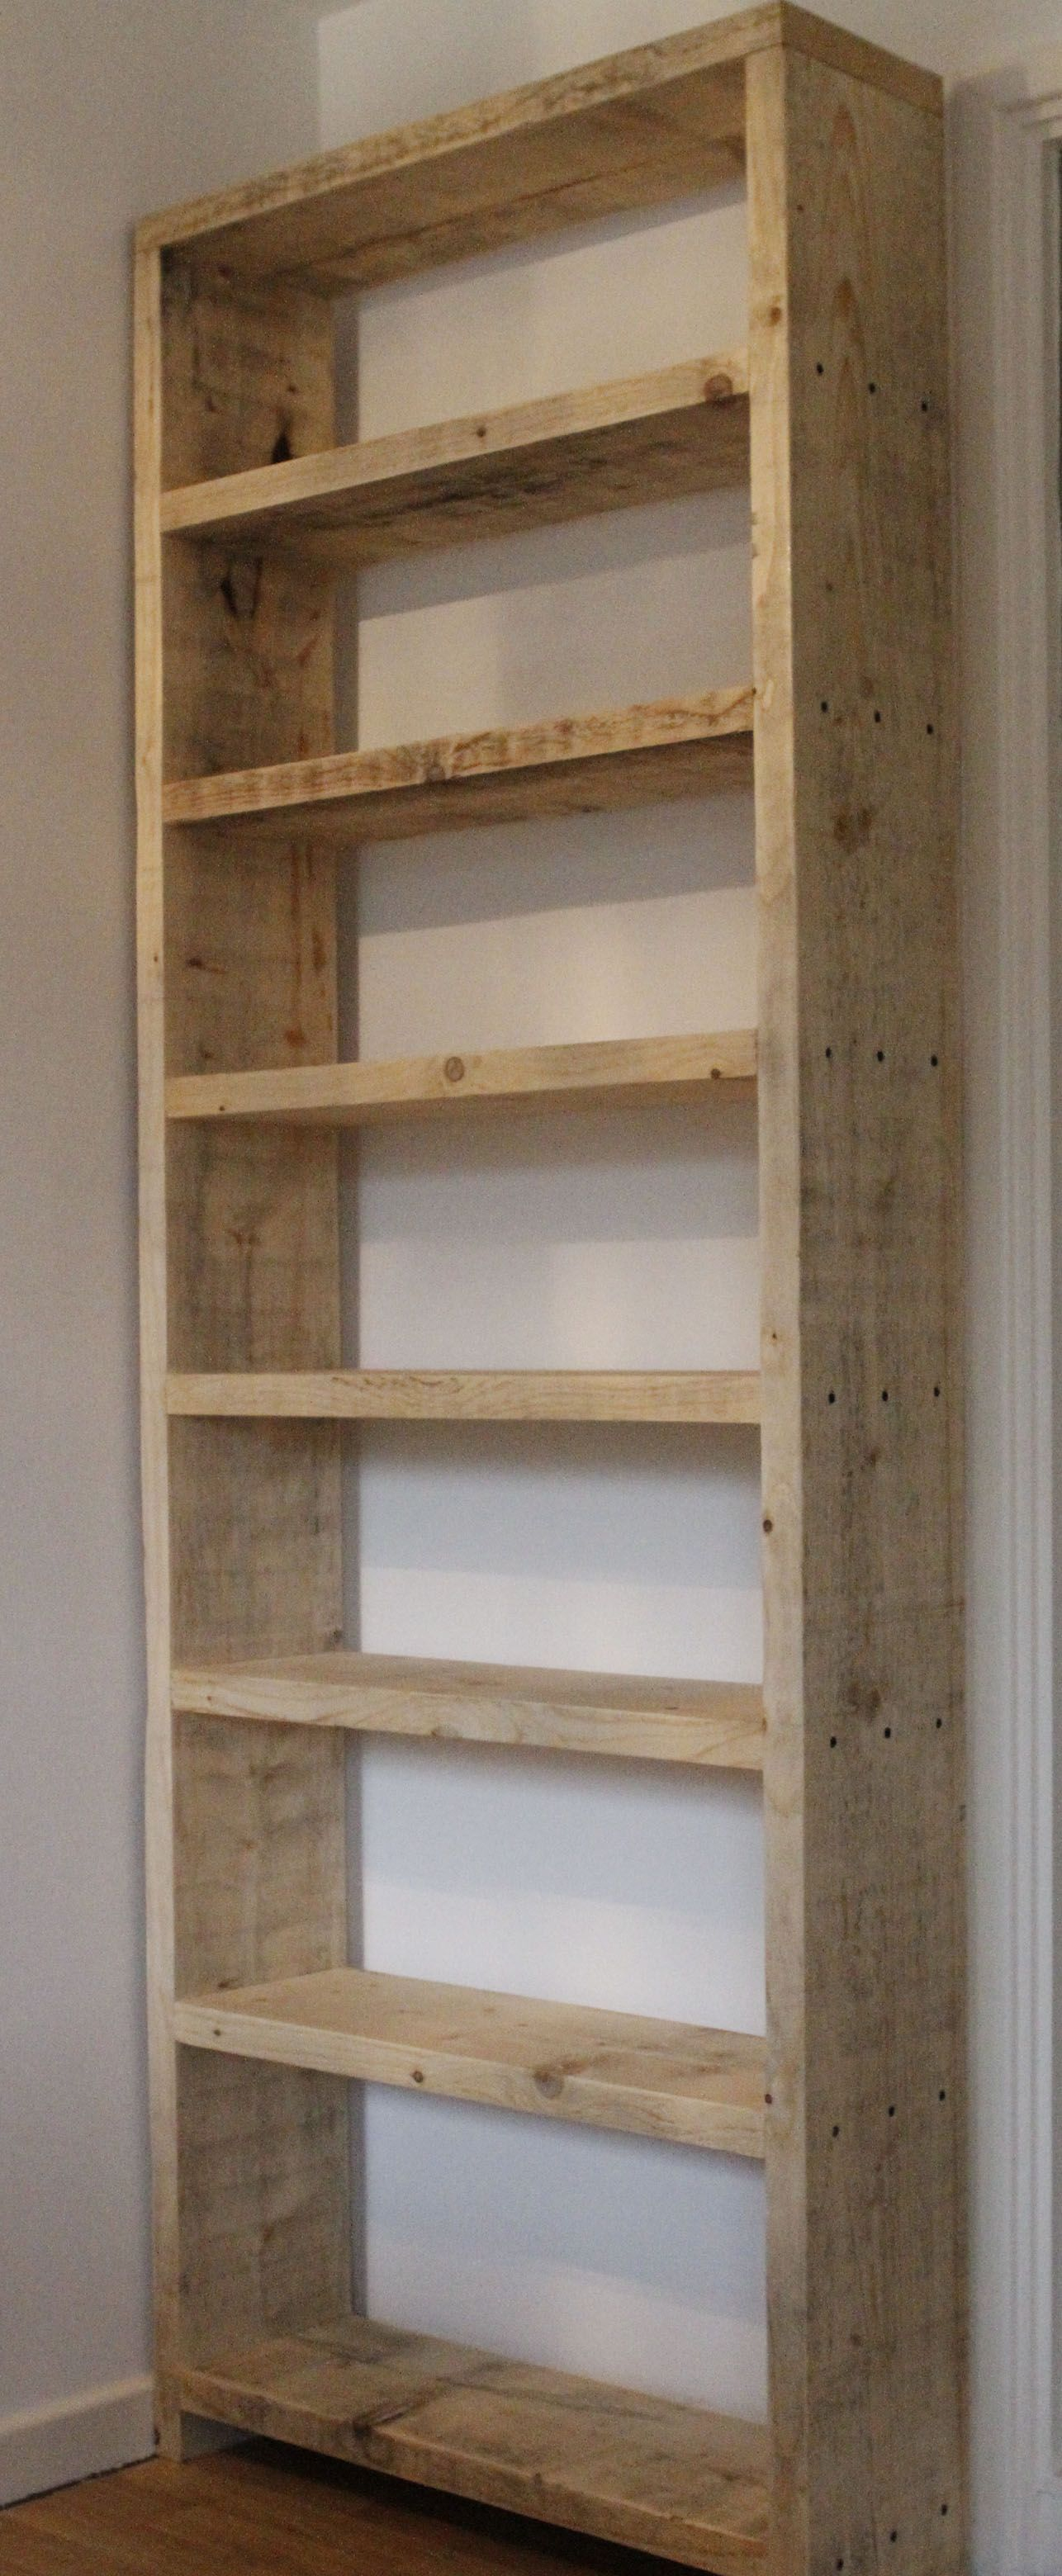 of magnificent bookshelf a how wine simple pdf diy bookcase build corner plans to bookcases woodworking about choosing